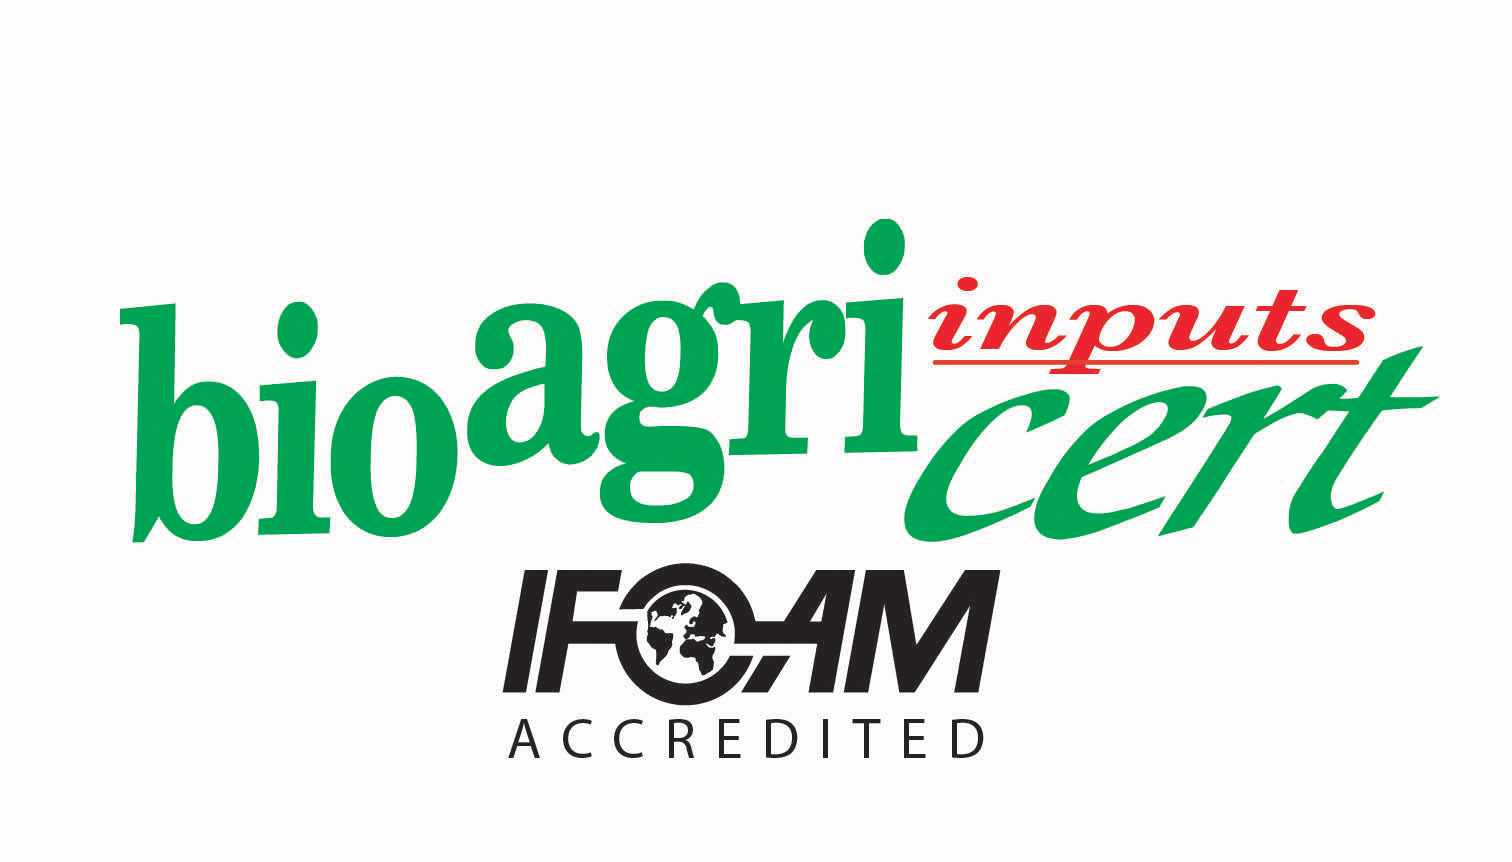 inputs ifoam accredited below black